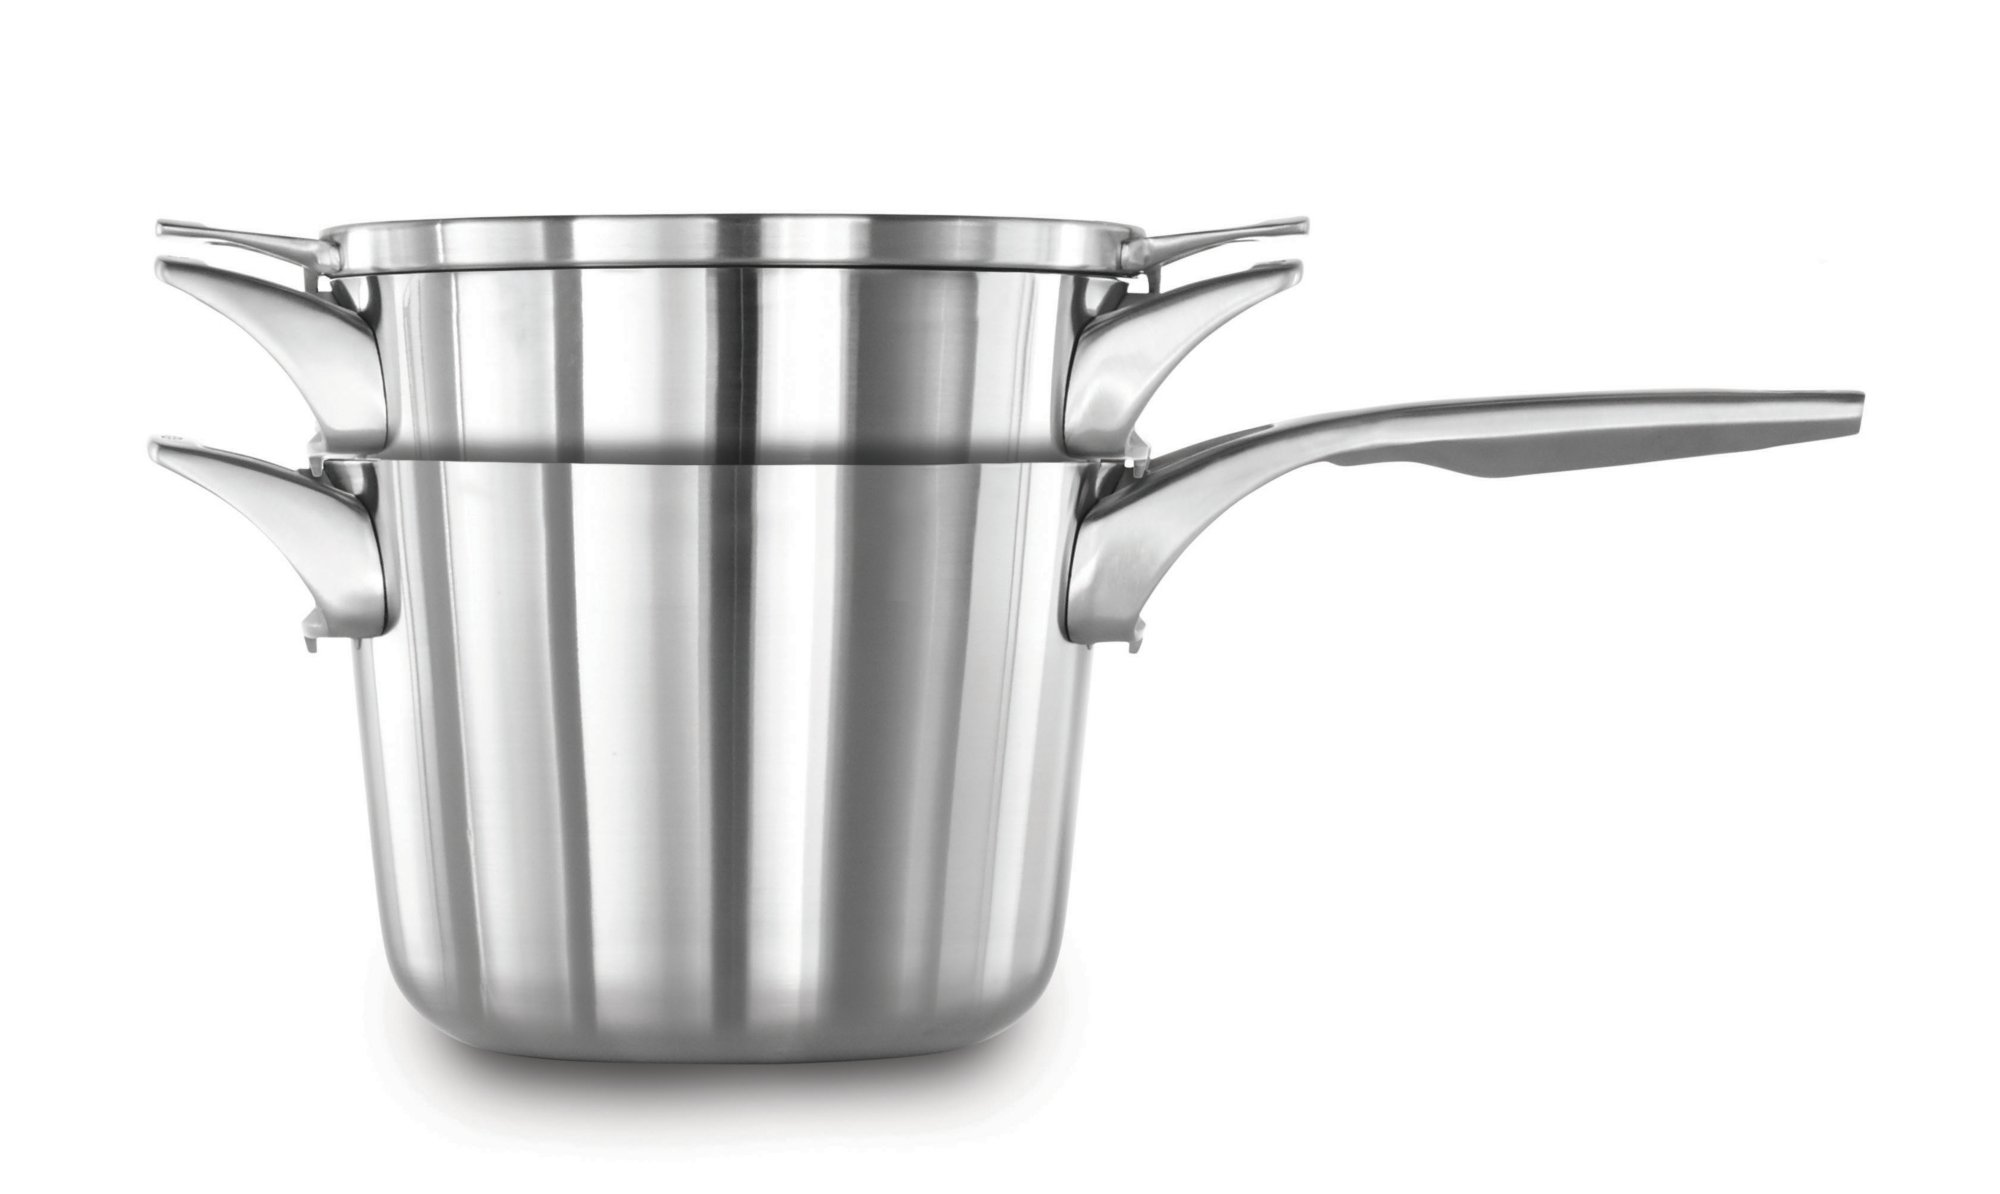 Calphalon Premier™ Space Saving Stainless Steel 4.5 qt. Soup Pot with Cover